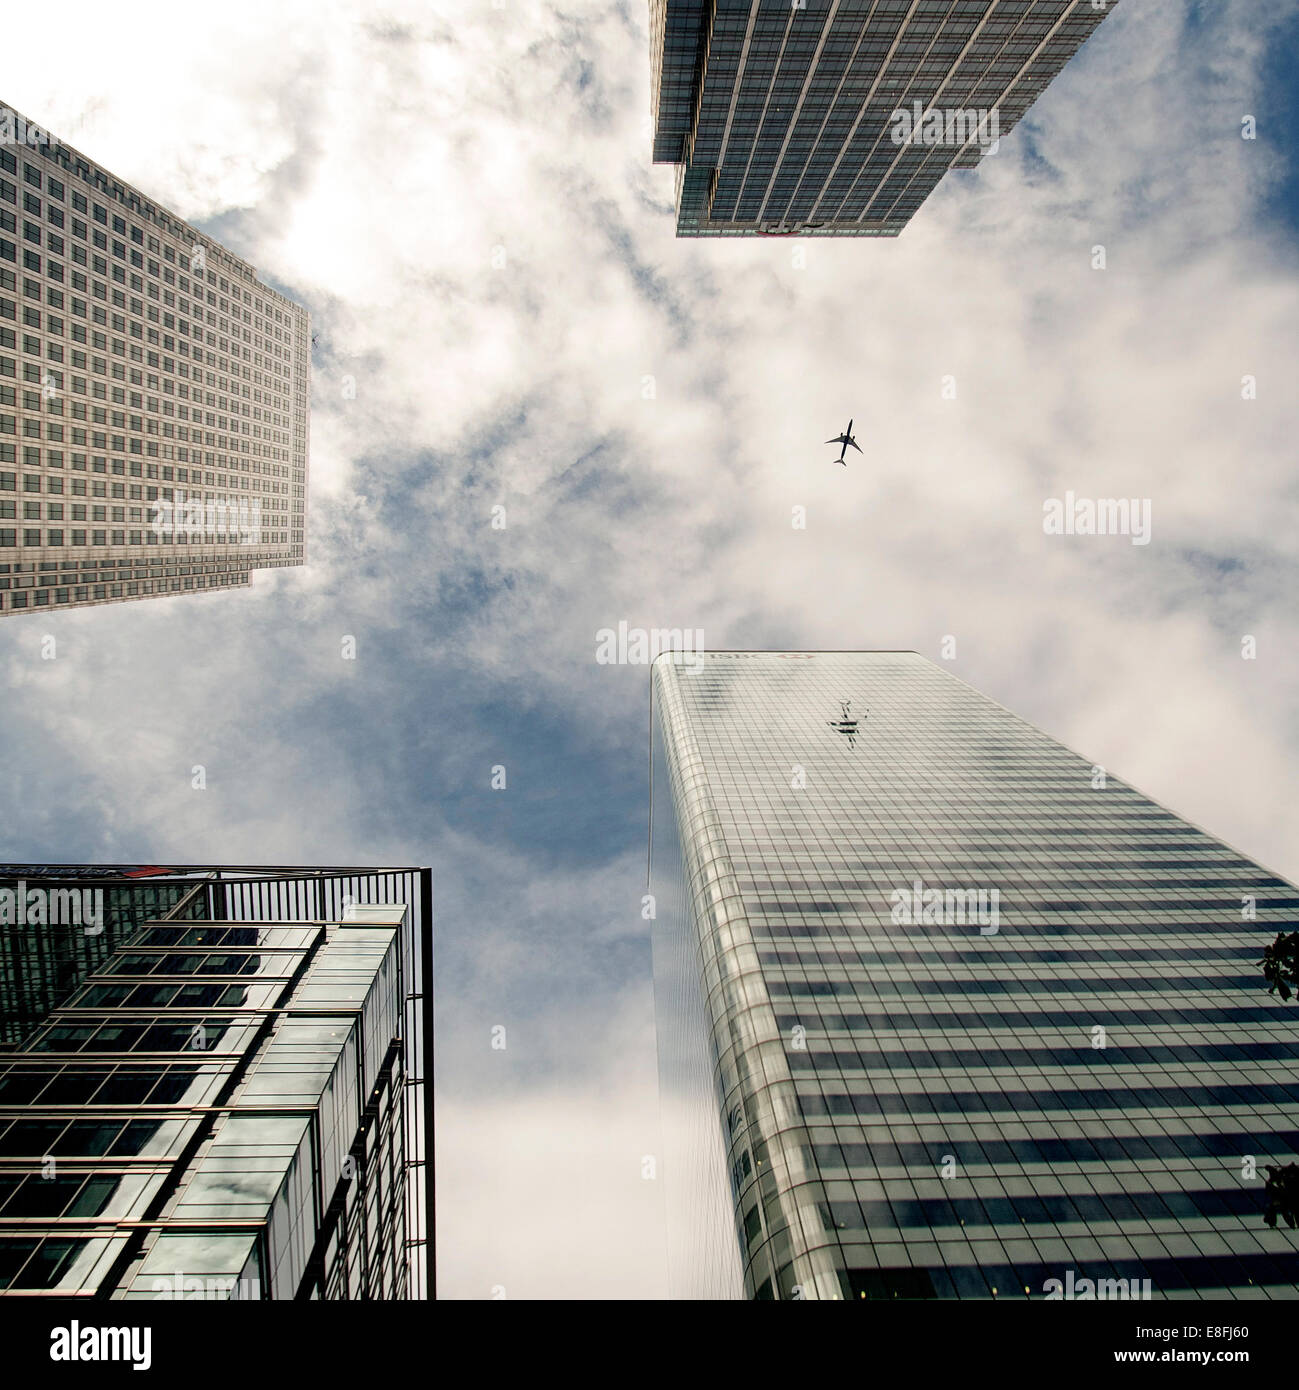 Plane flying past skyscrapers, Canada Square, London, England, UK - Stock Image